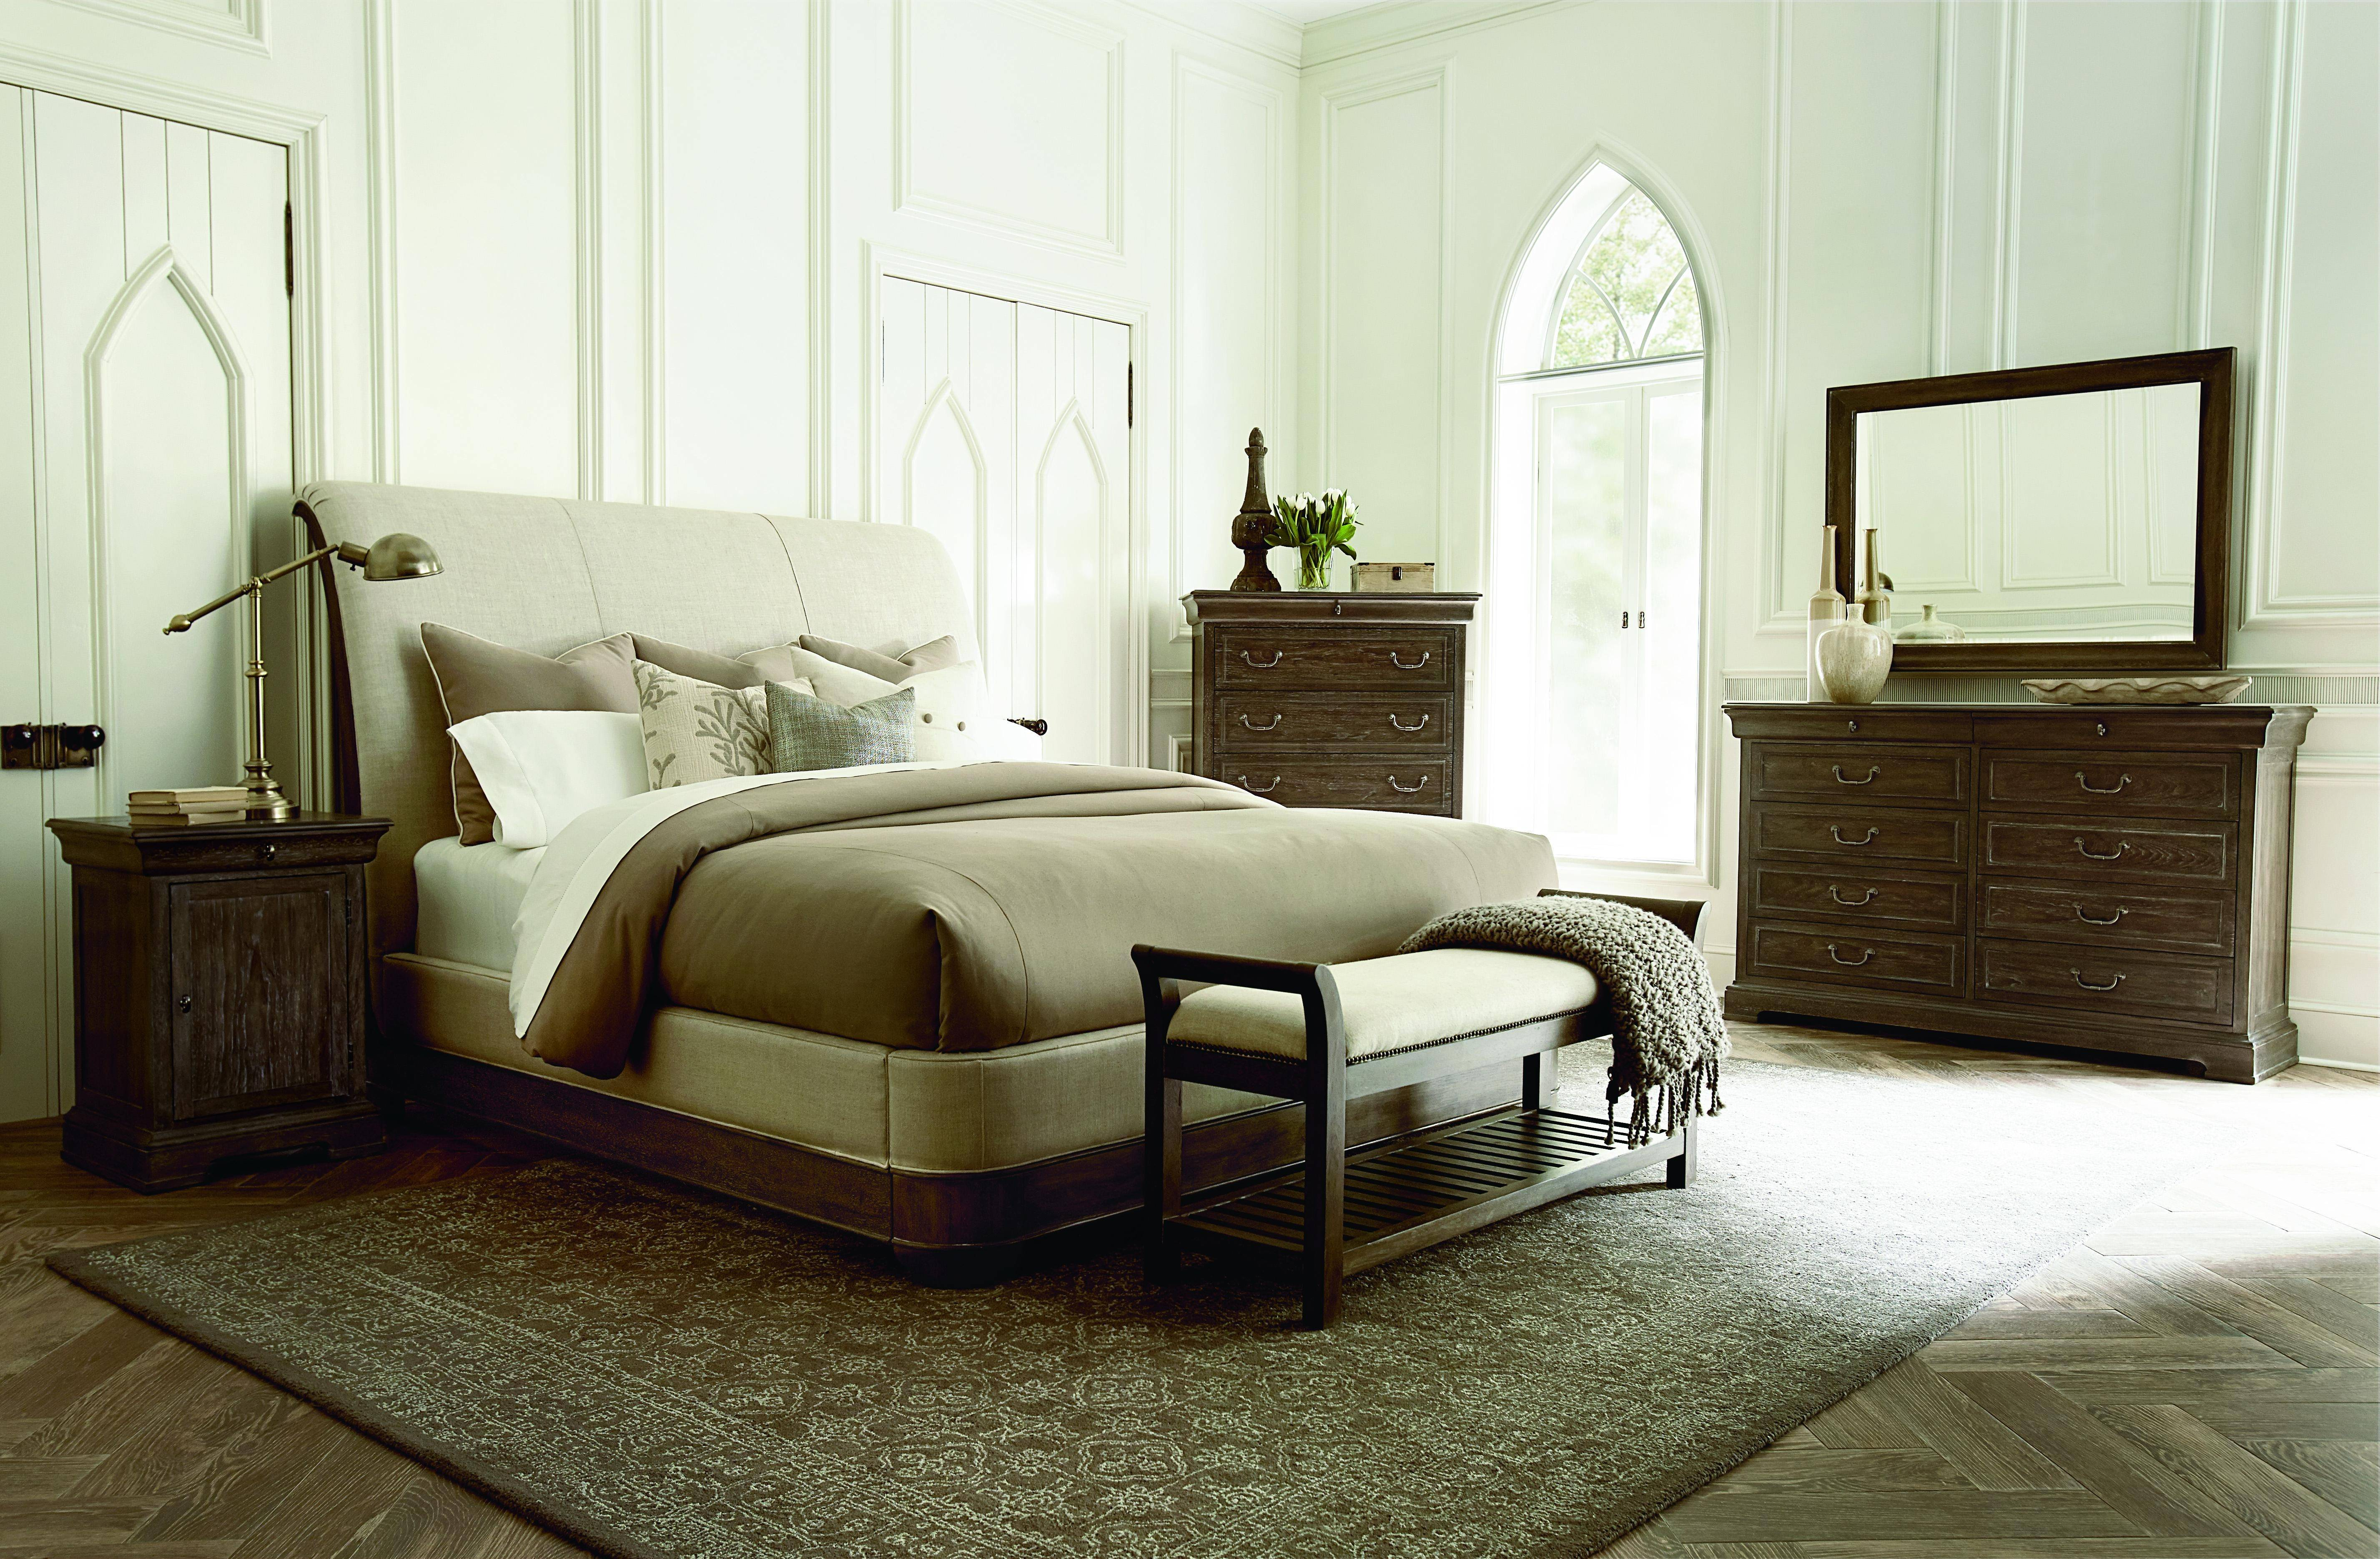 Picture of: Traditional Gray Fabric Queen Sleigh Bed St Germain A R T 215155 1513